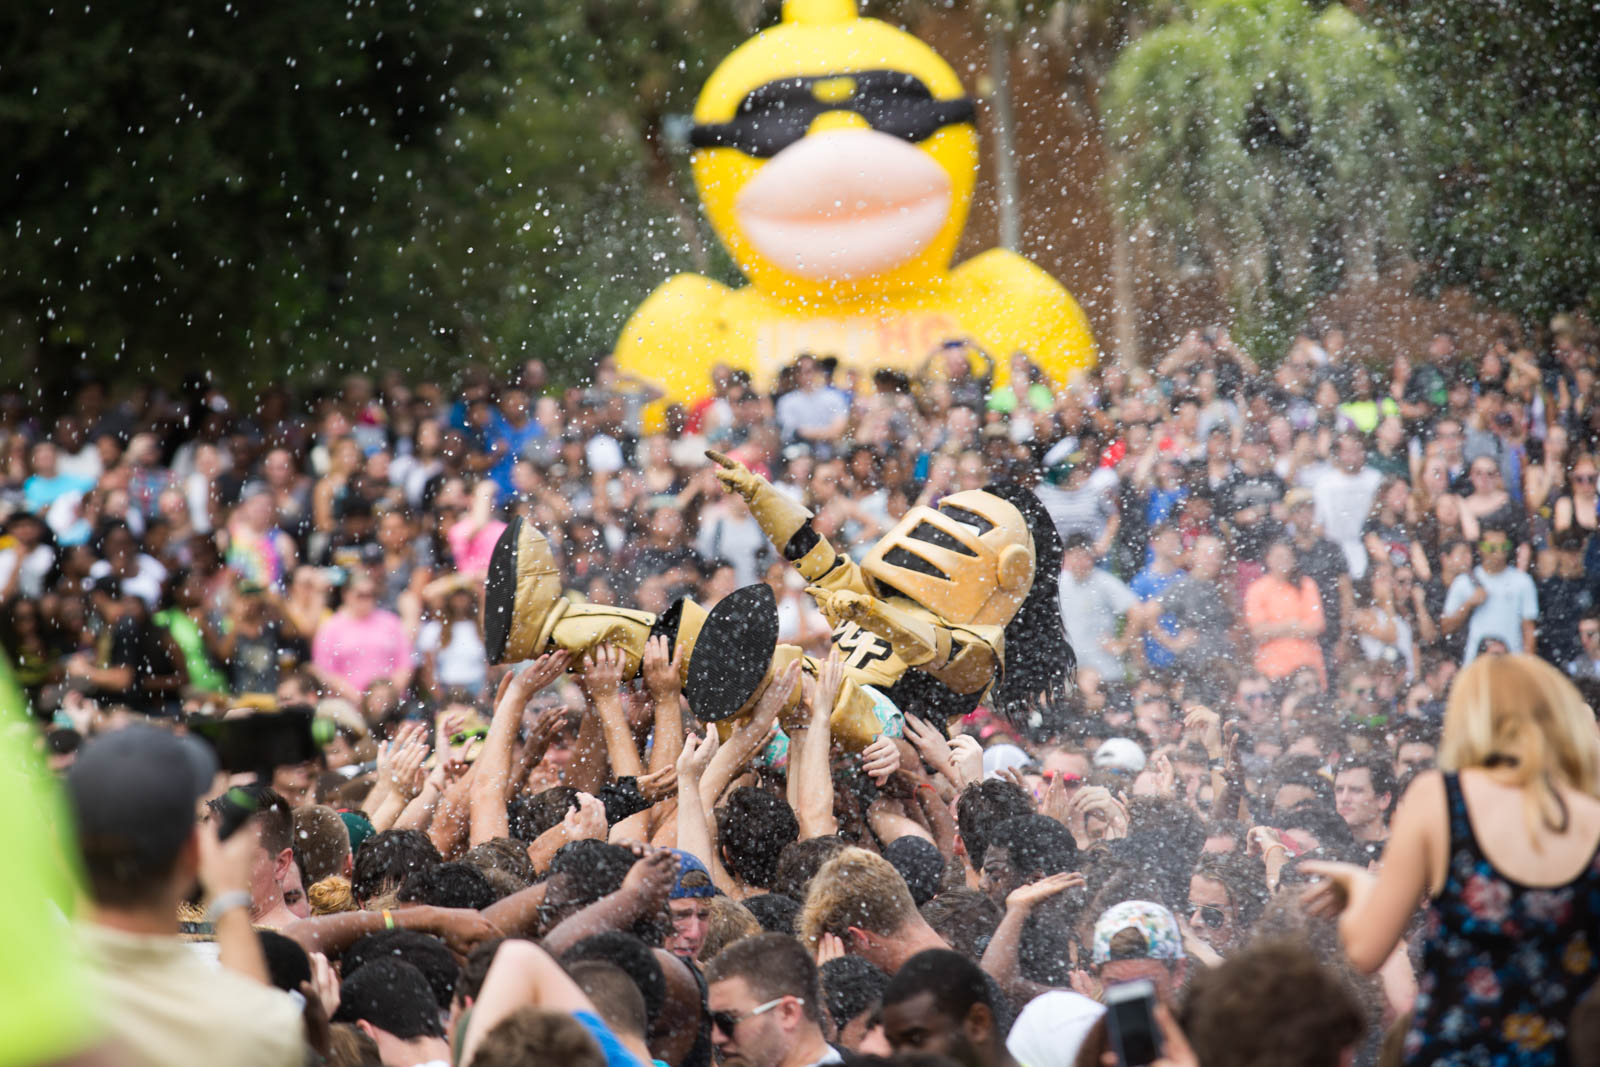 ucf-best-of-photos-spirit-splash-2016